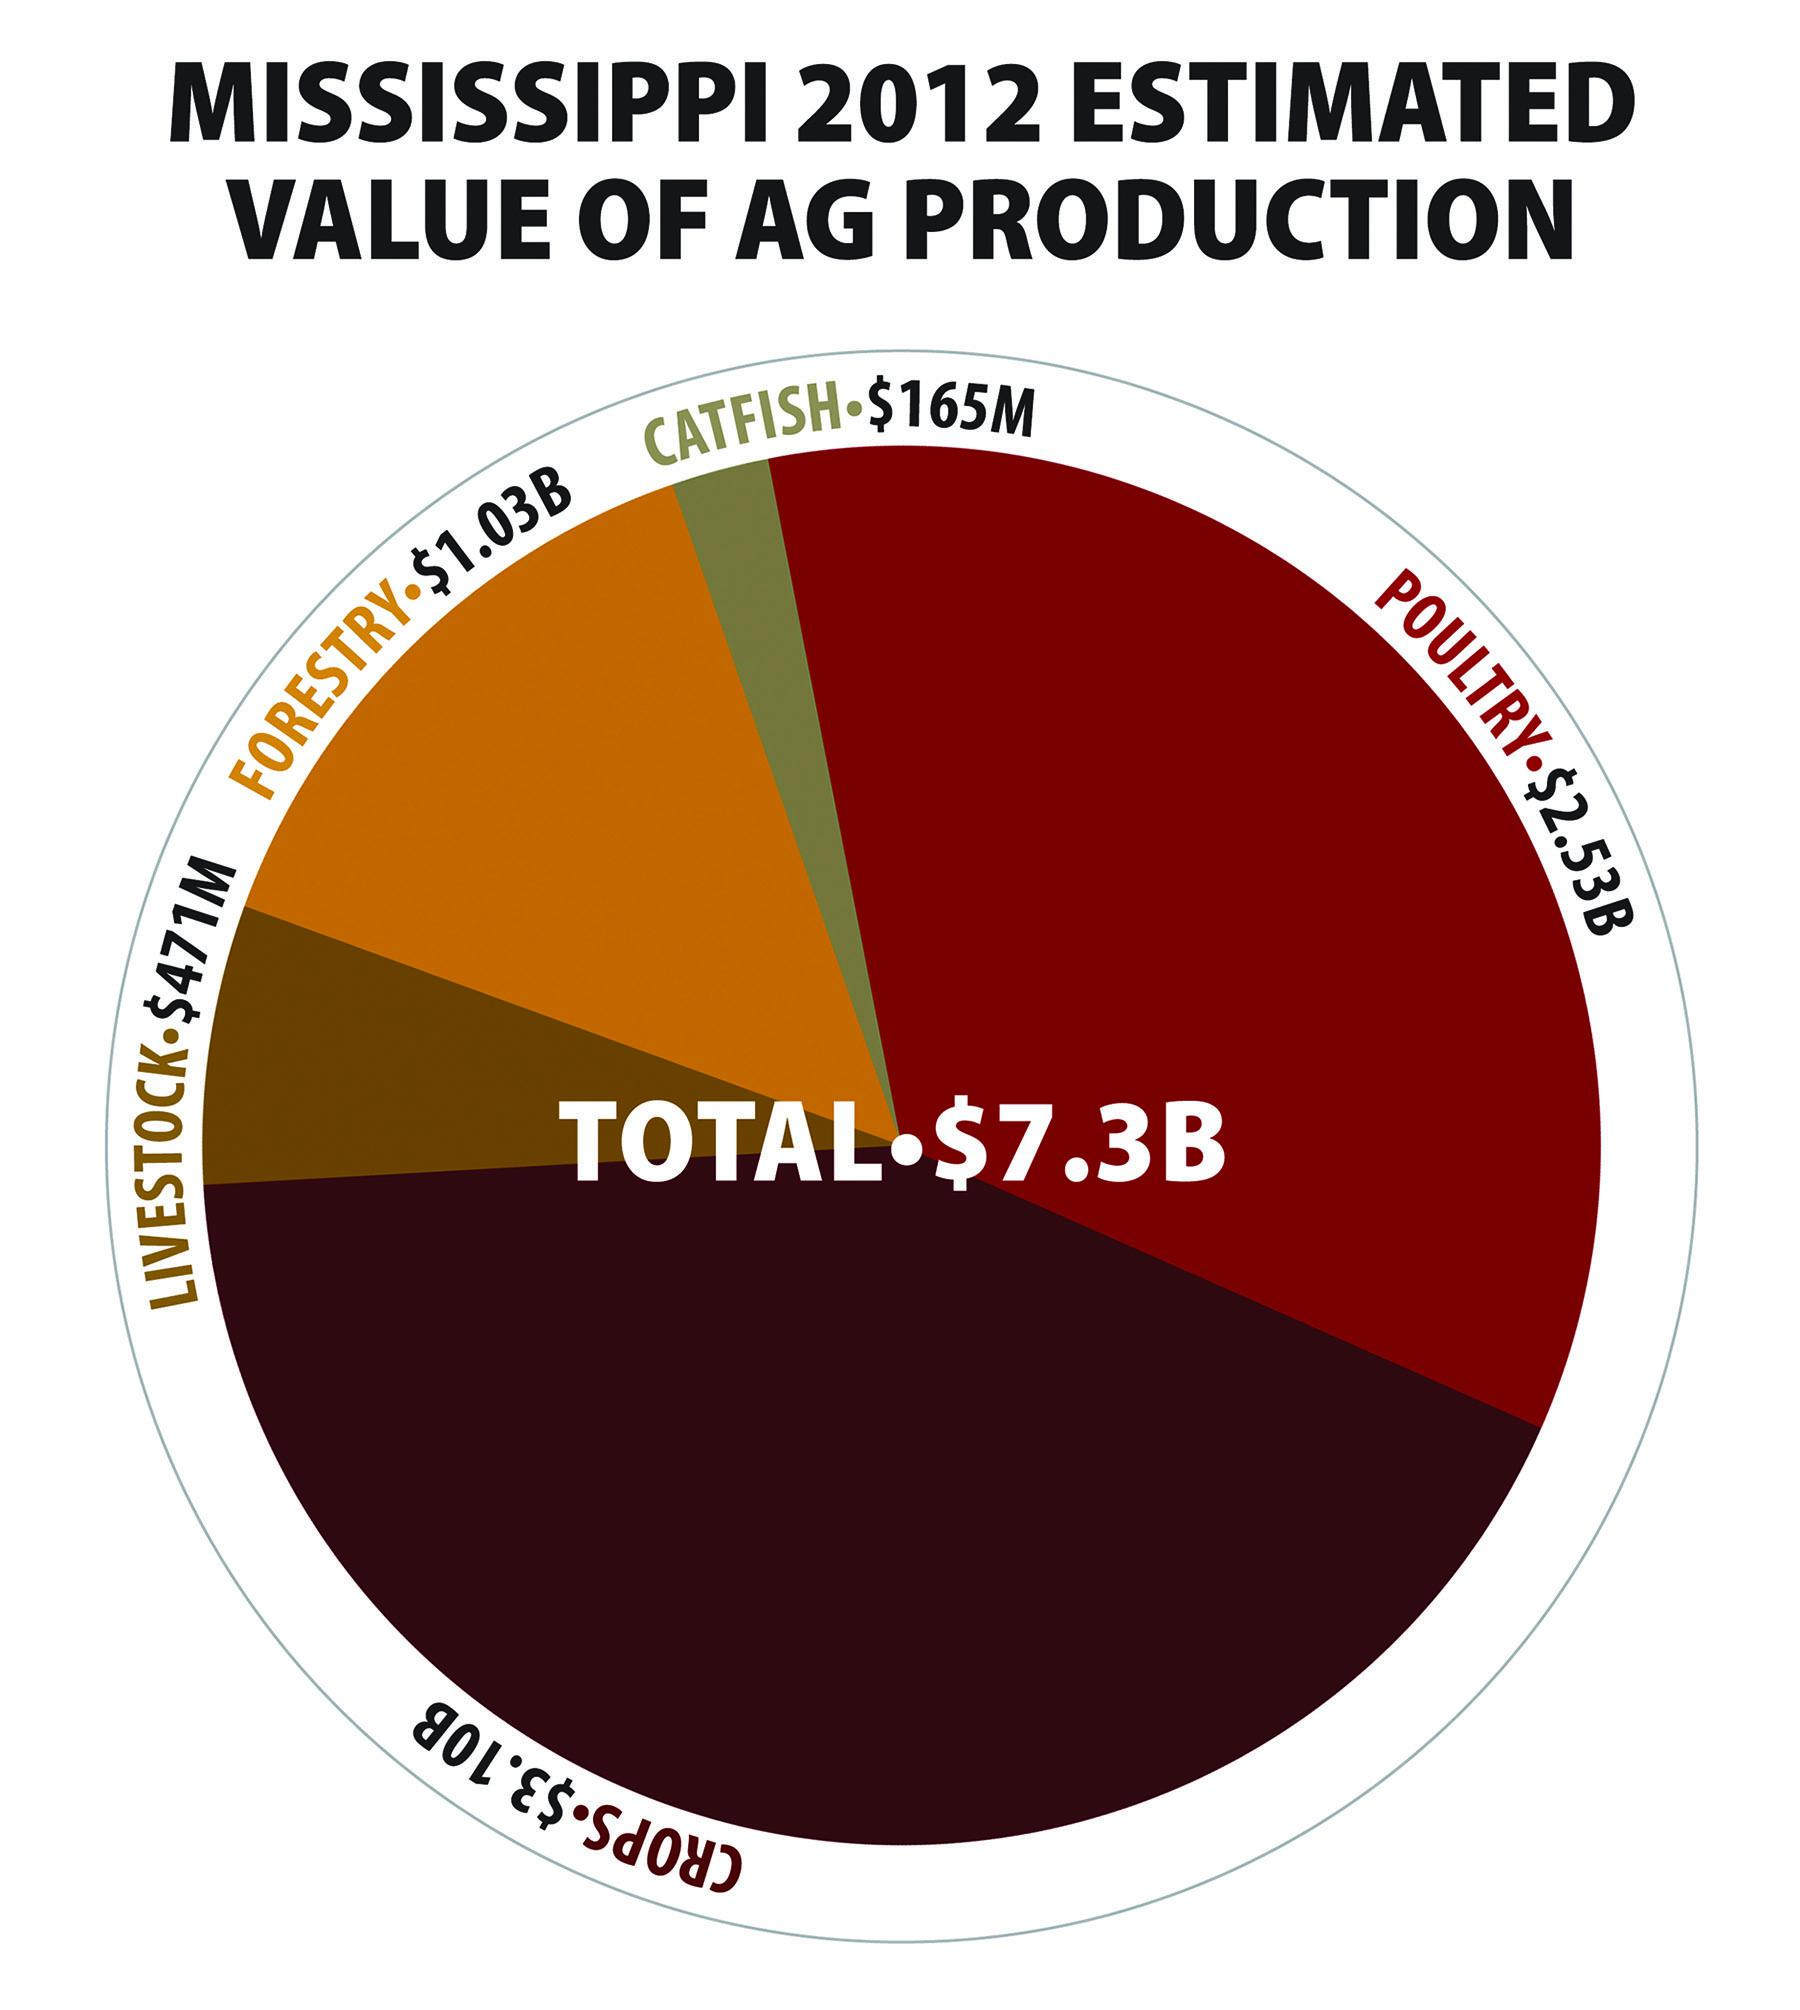 Mississippi 2012 Estimated Value of Ag Production